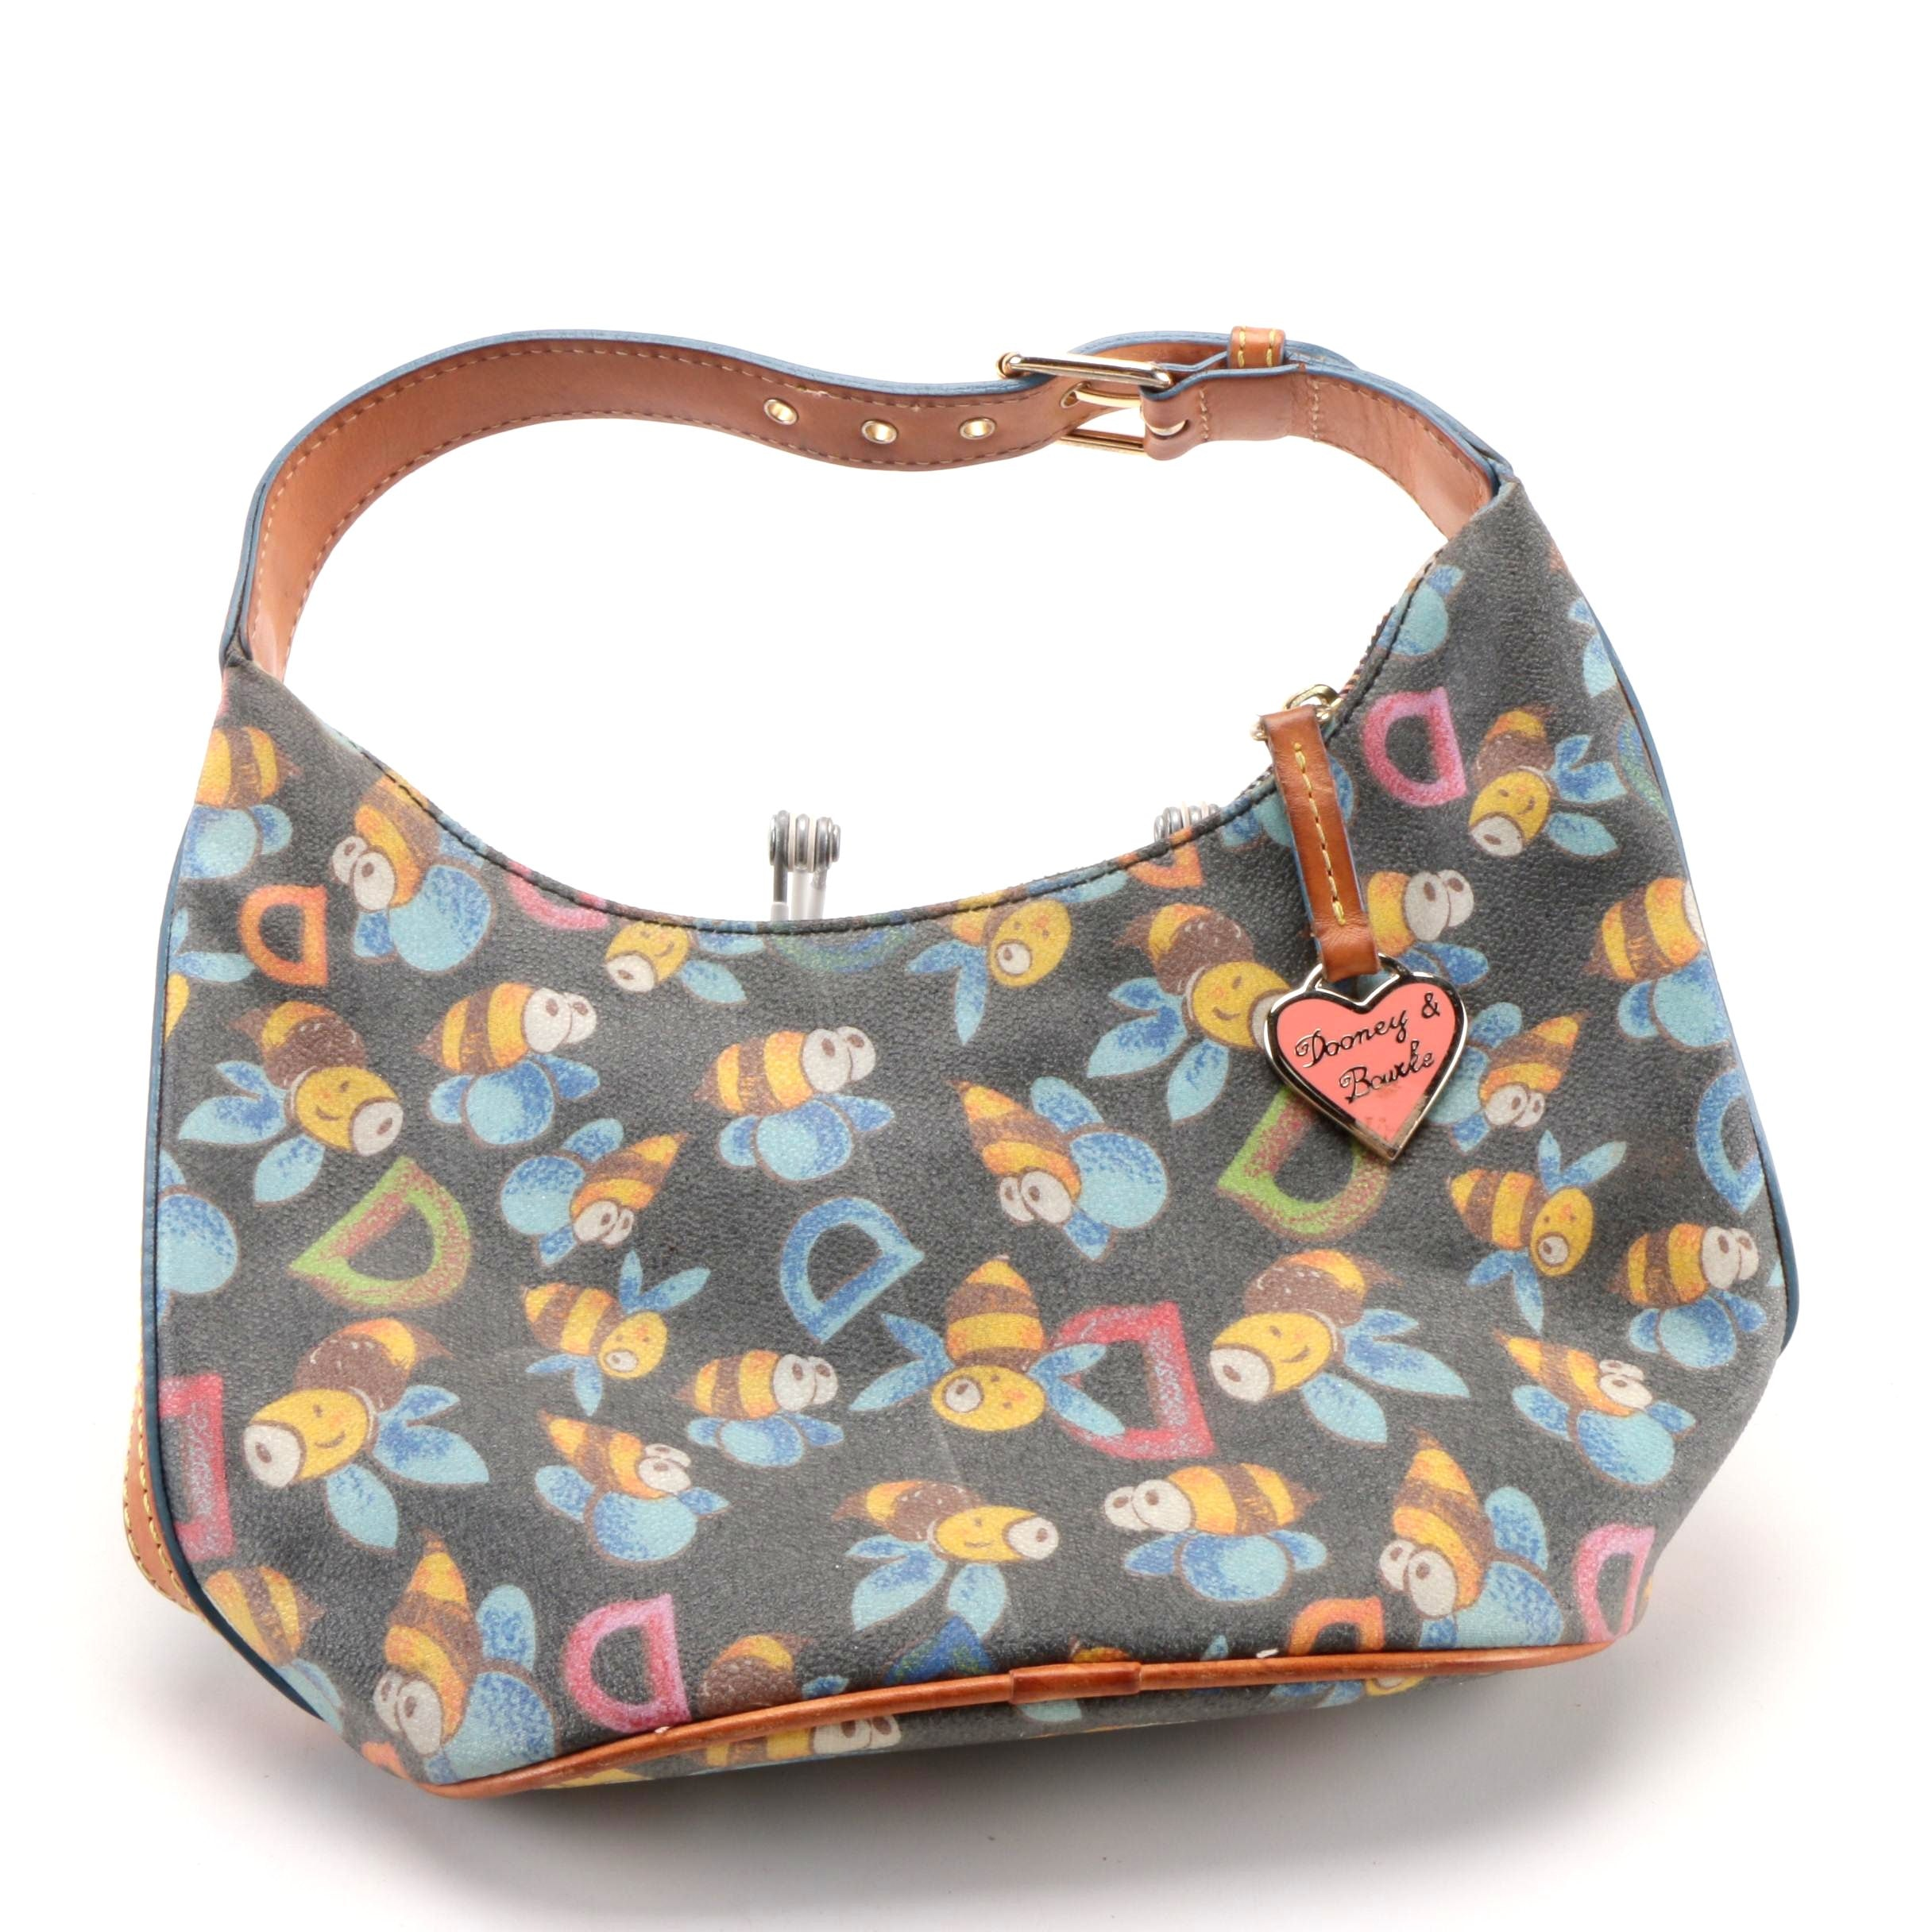 Dooney & Bourke Animated Bee Handbag